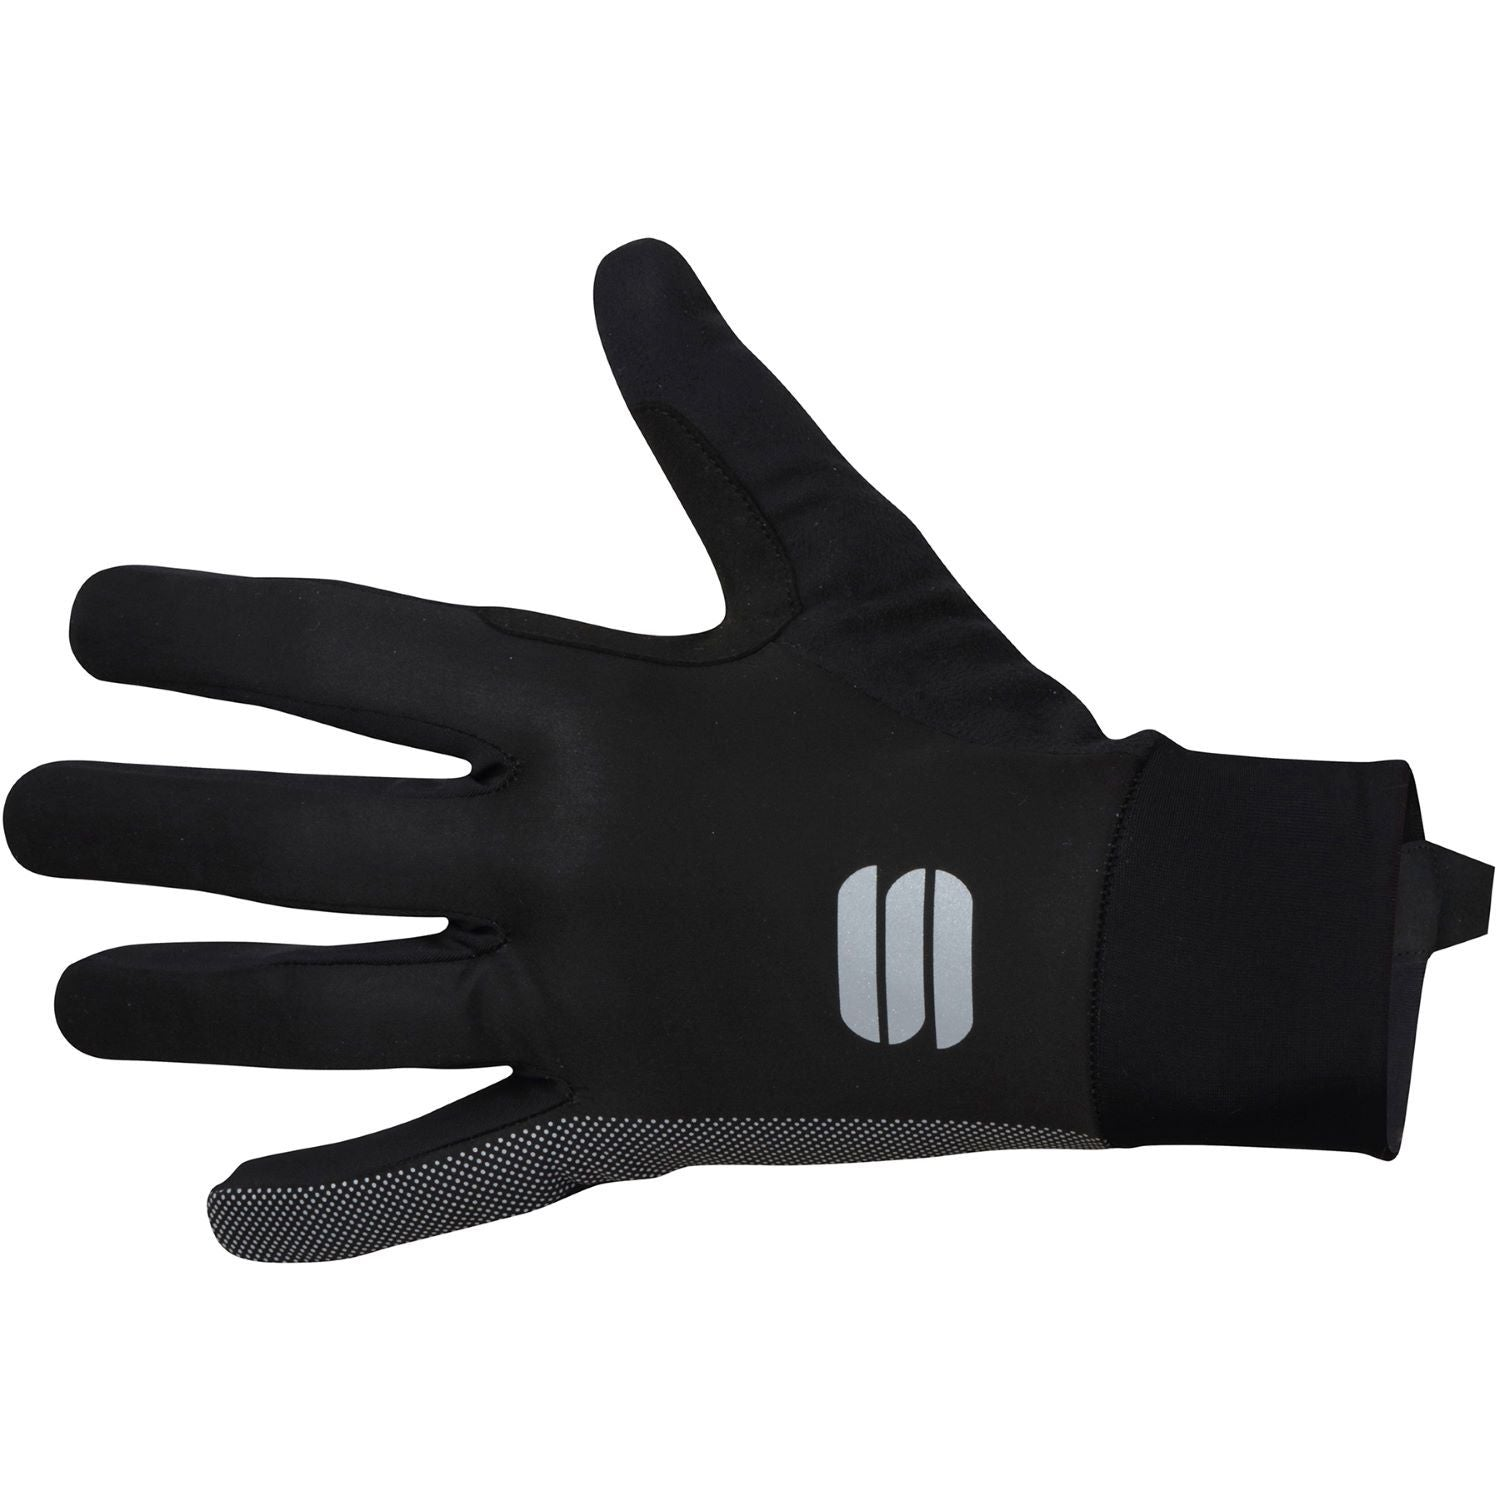 Sportful-Sportful Giara Thermal Gloves-Black-XS-SF195470021-saddleback-elite-performance-cycling